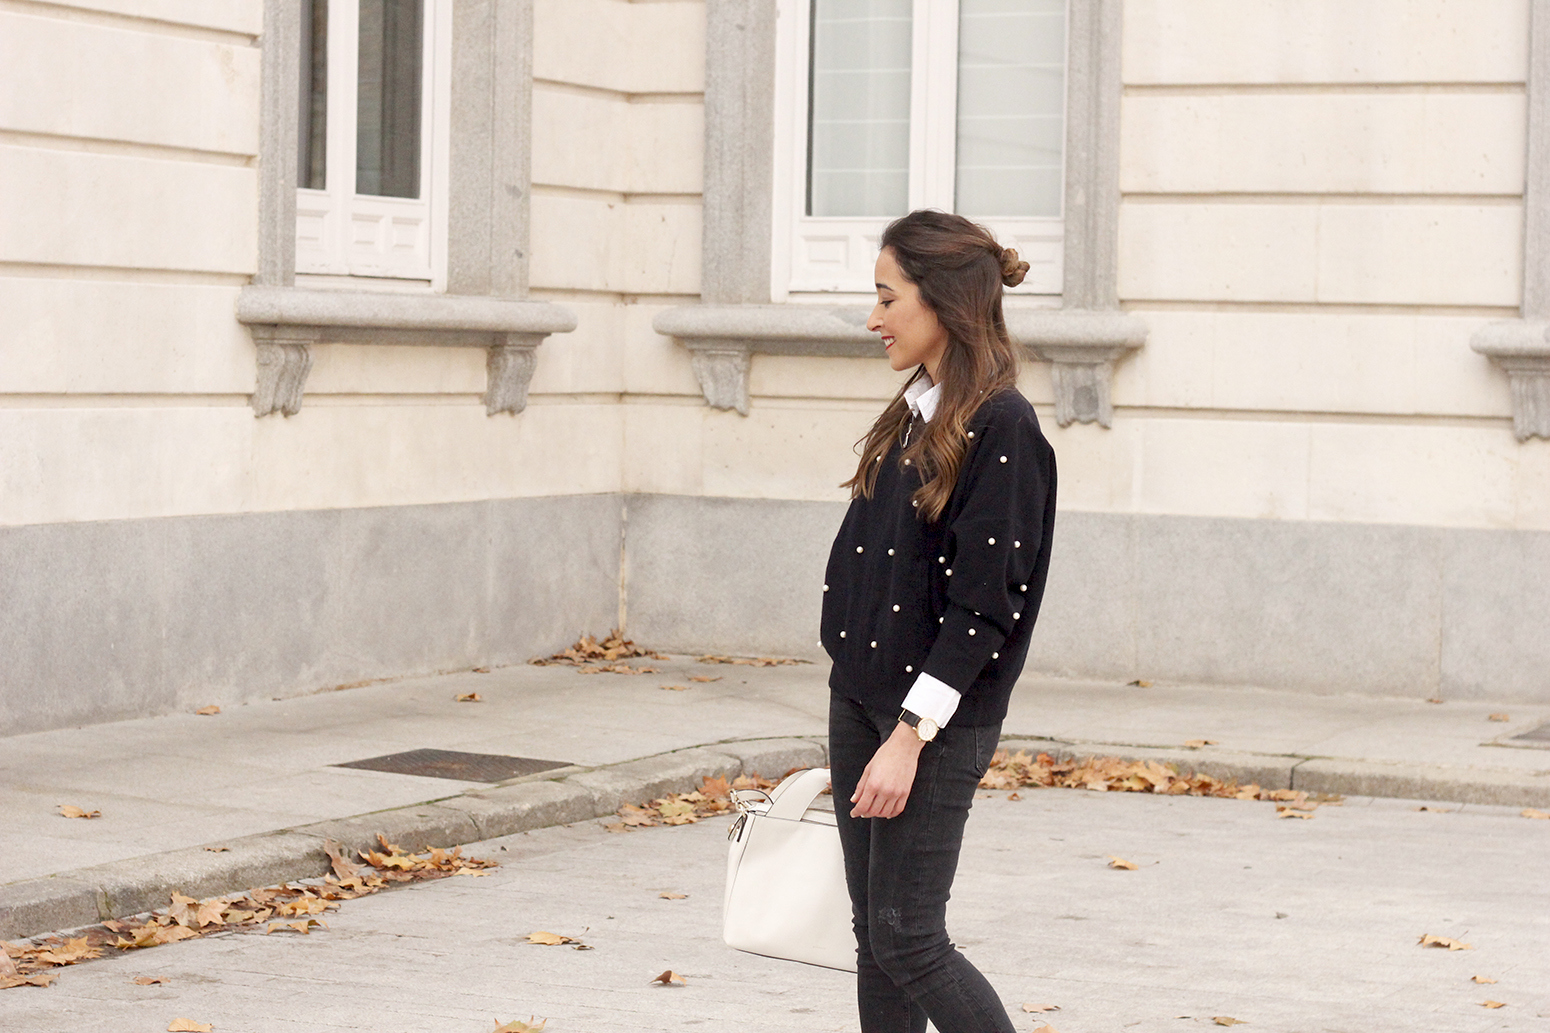 pearl bomber uterqüe black jeans white bag winter outfit 2018 style fashionbomber07